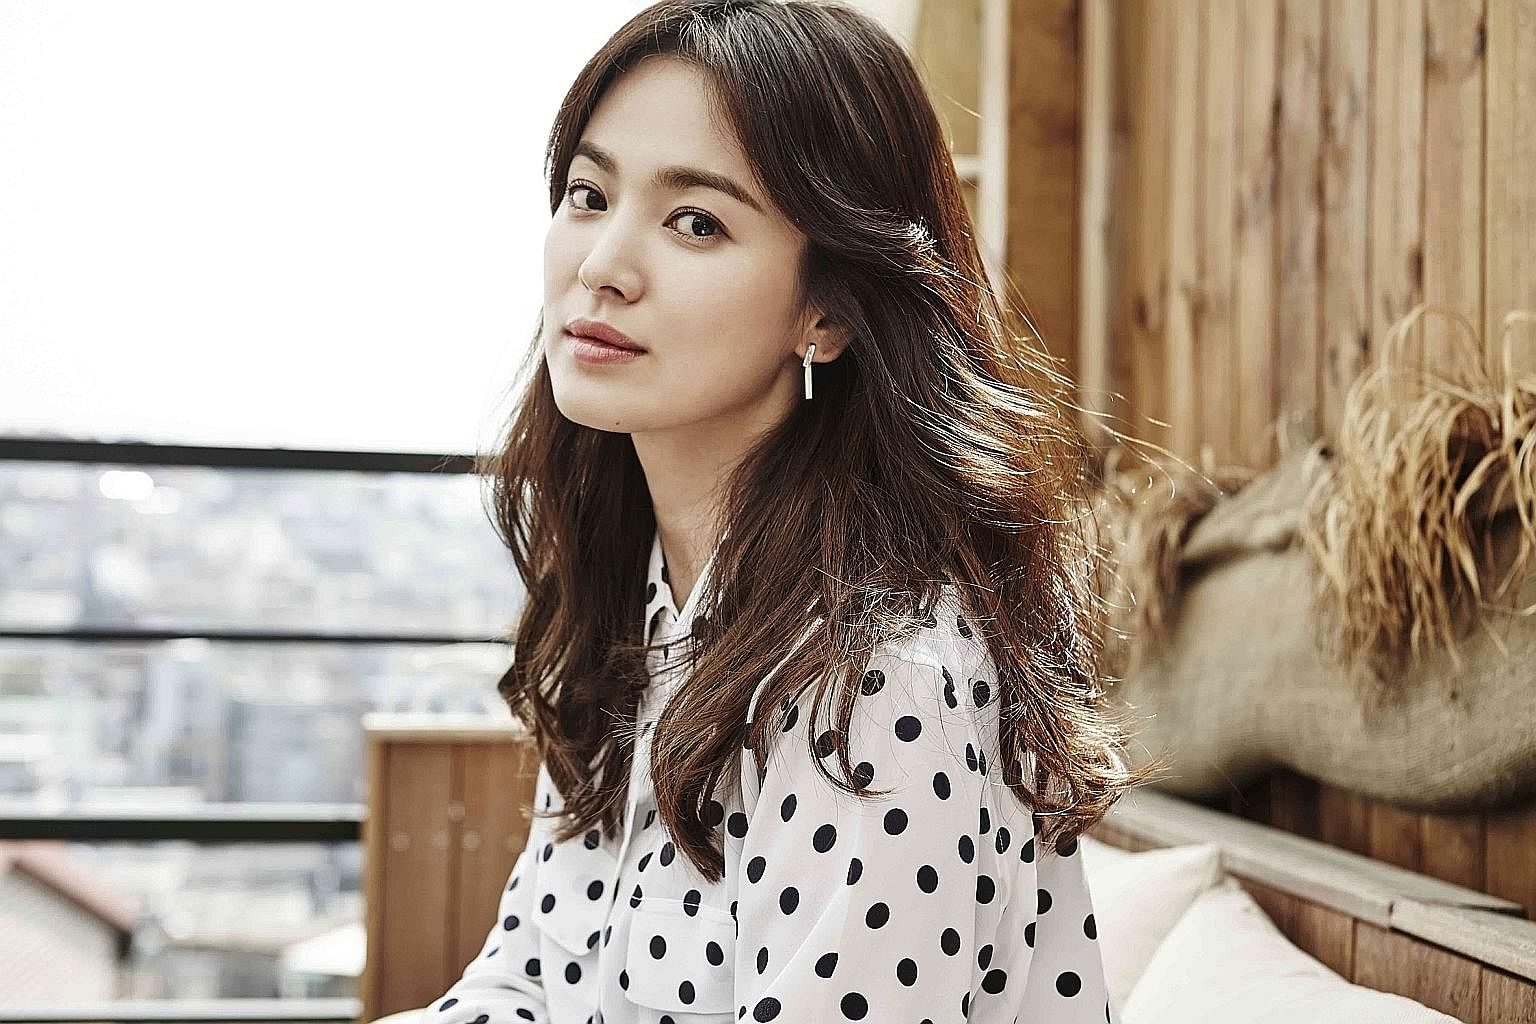 Glowing like K-drama stars such as Song Hye Kyo (above) is a gold standard for many.